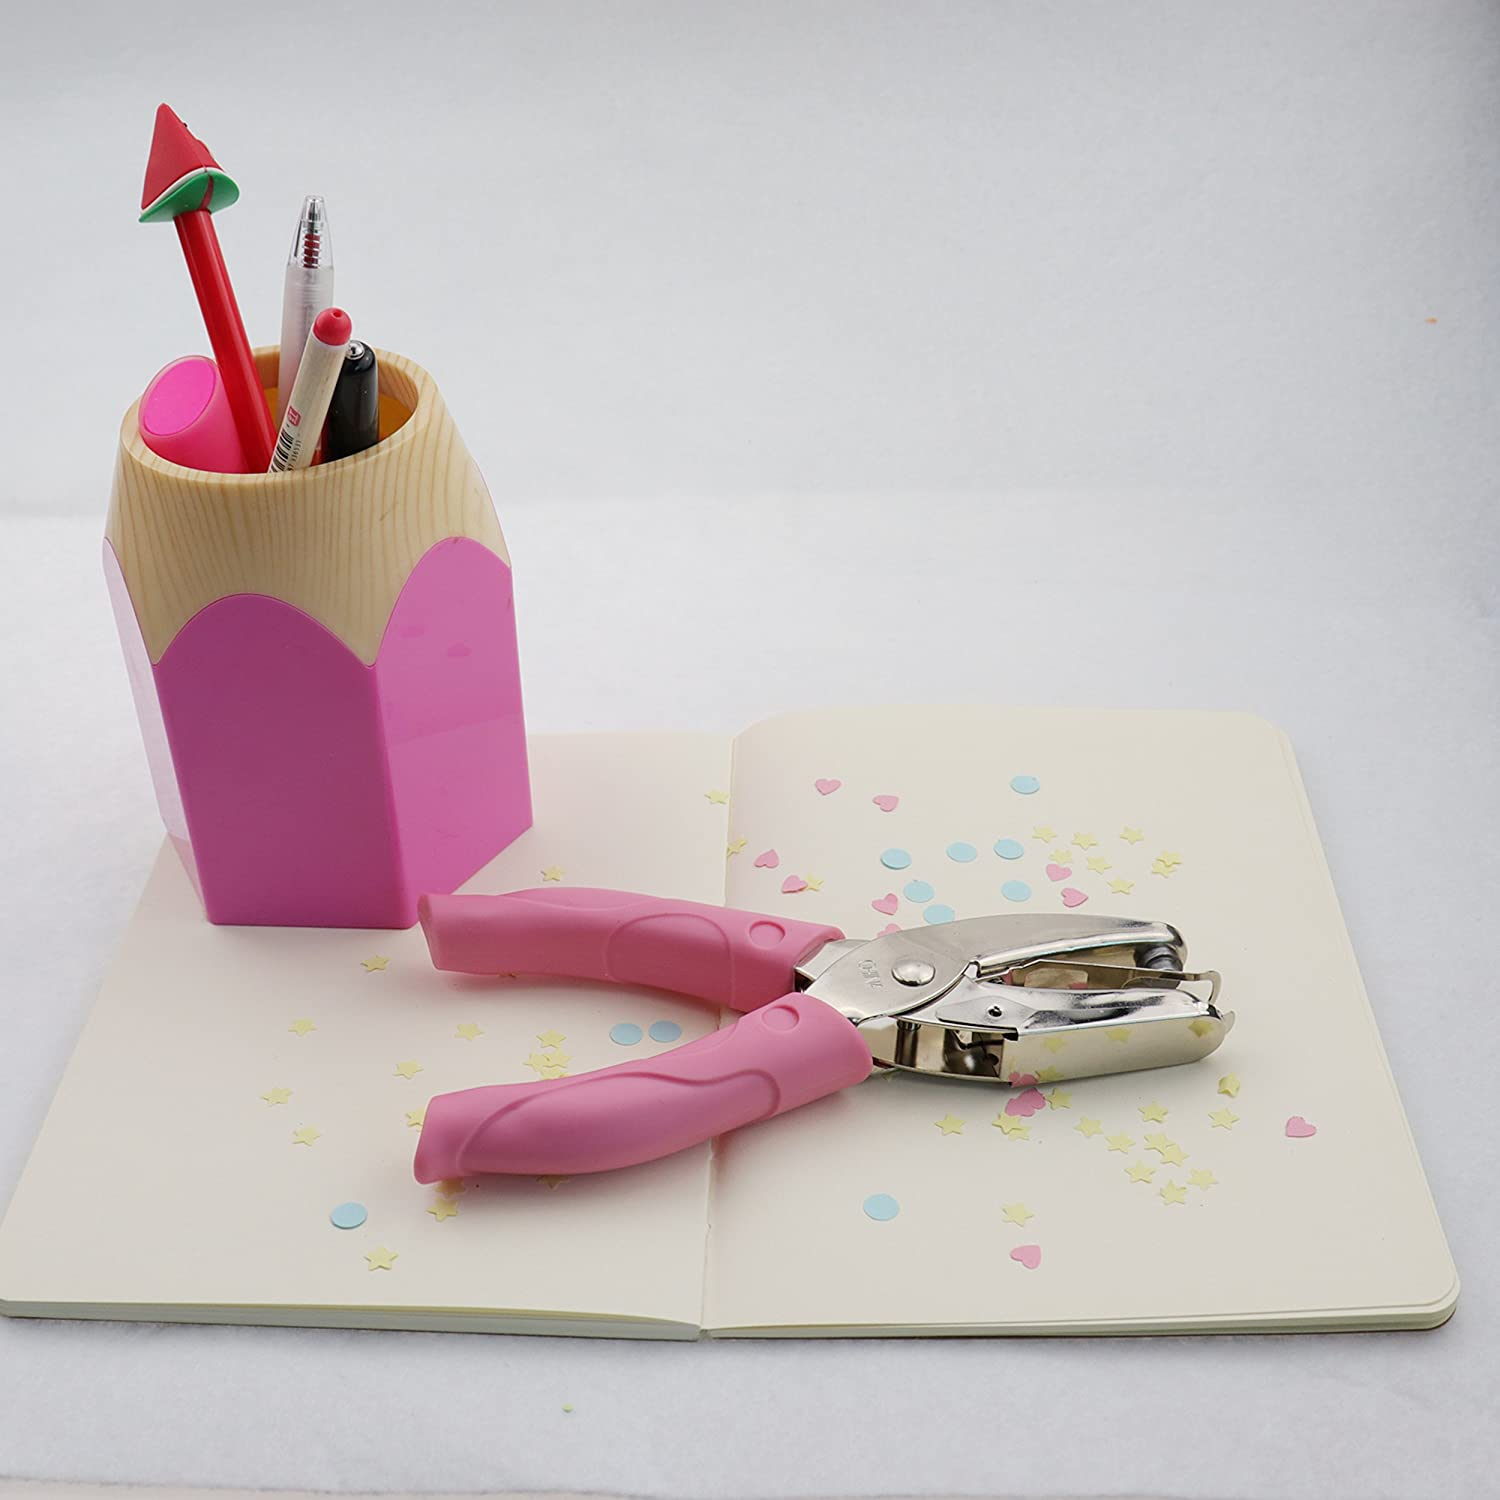 Single Hole Punch Paper Puncher with Pink Grip(Large Circle)